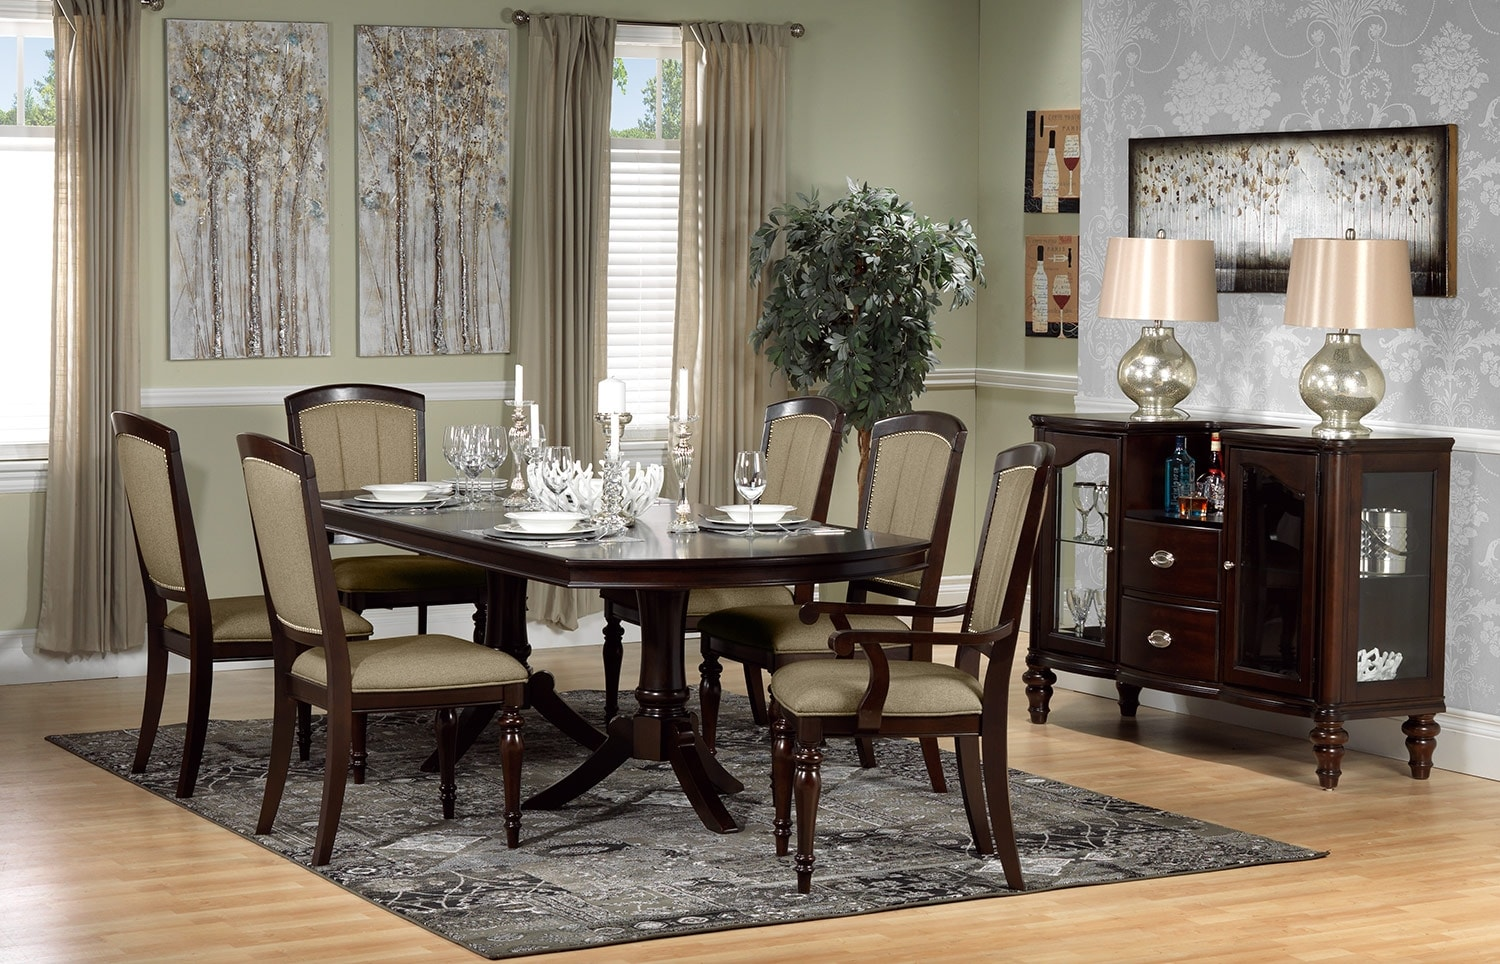 rooms to go dining room table | Thoreaux 7-Piece Dining Room Set - Dark Cherry | Leon's